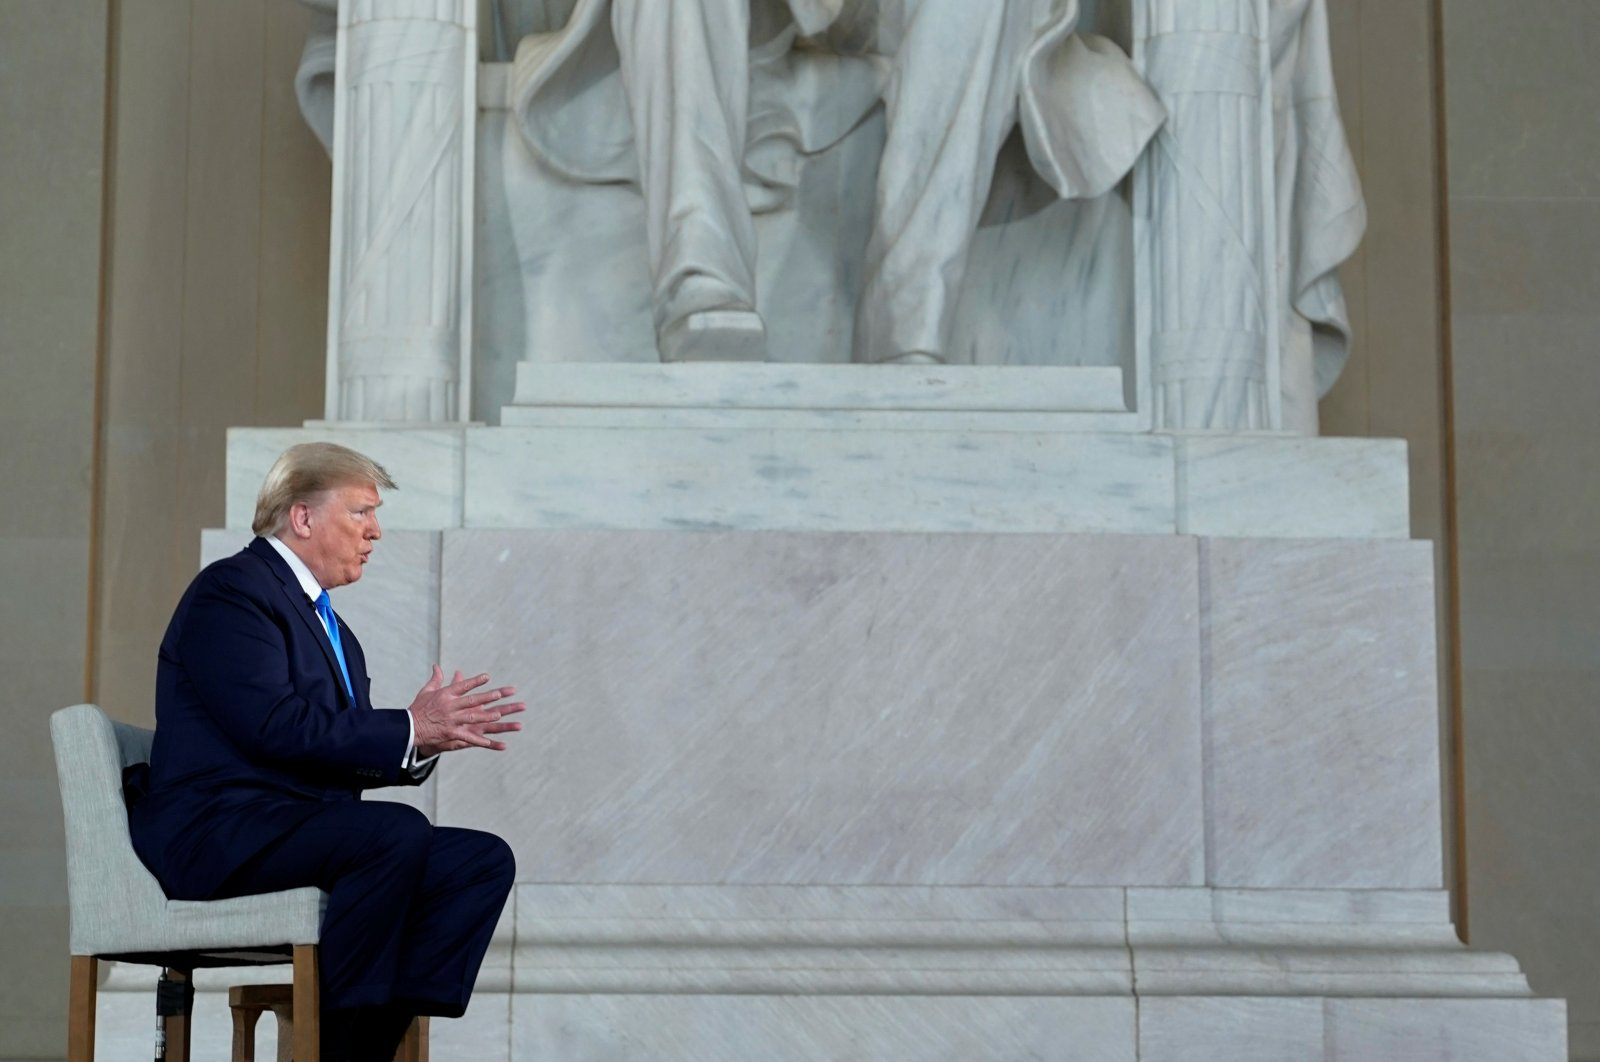 U.S. President Donald Trump participates in a live Fox News Channel virtual town hall about the response to the coronavirus pandemic, as he sits in front of the statue of former President Abraham Lincoln inside the Lincoln Memorial in Washington, D.C., U.S., May 3, 2020. (Reuters Photo)